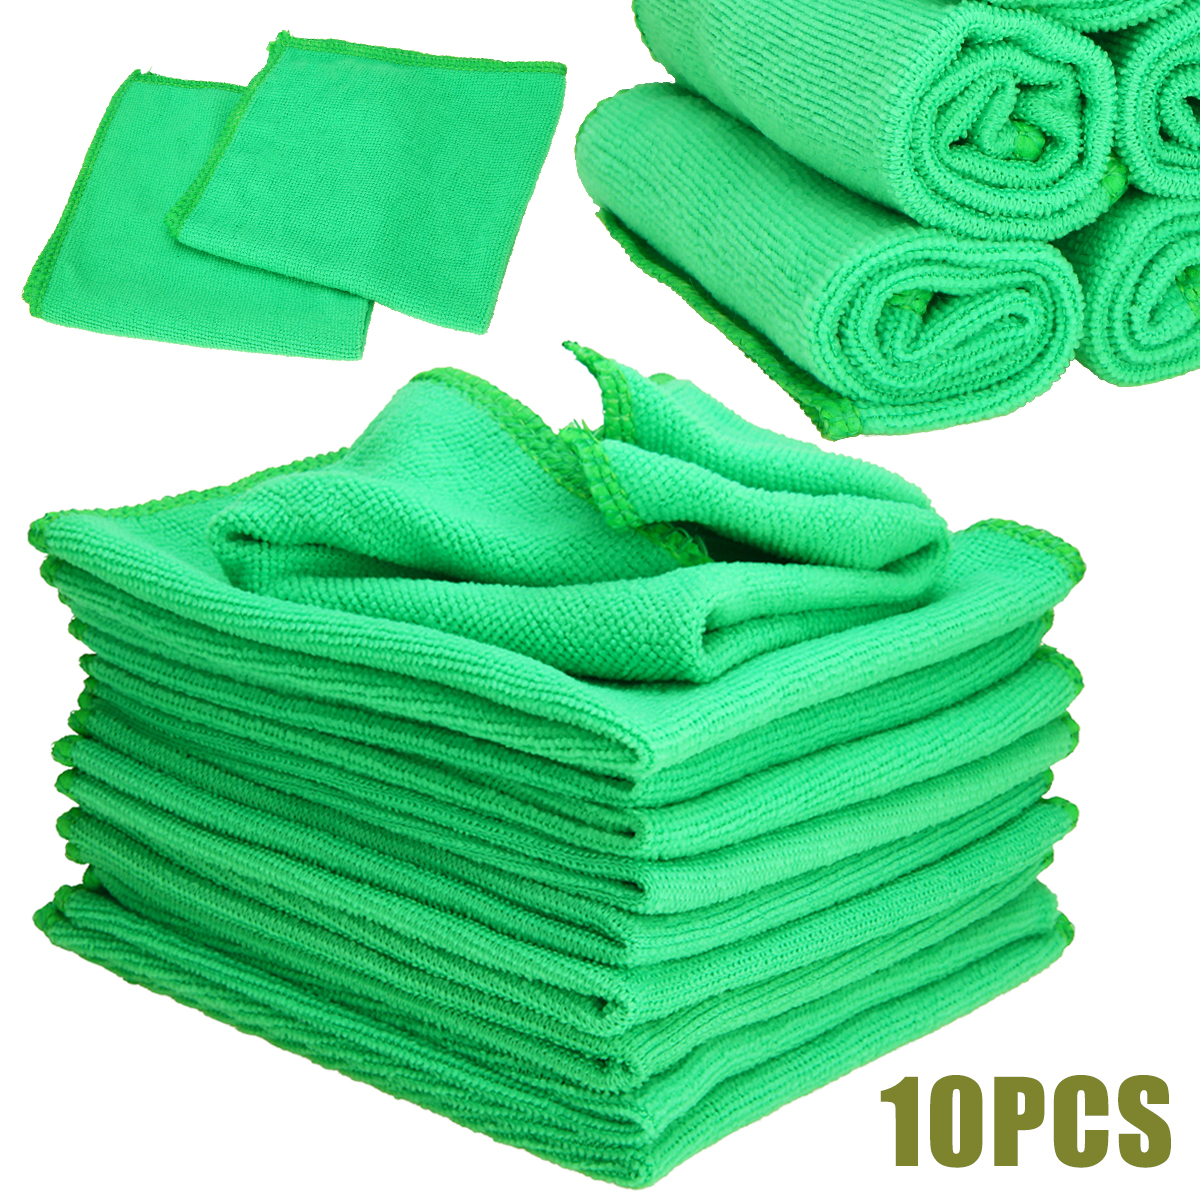 Image 2 - 10pcs/set 25 x 25cm Microfiber Car Wash Towel Soft Cleaning Auto Car Care Detailing Cloths Wash Towel-in Sponges, Cloths & Brushes from Automobiles & Motorcycles